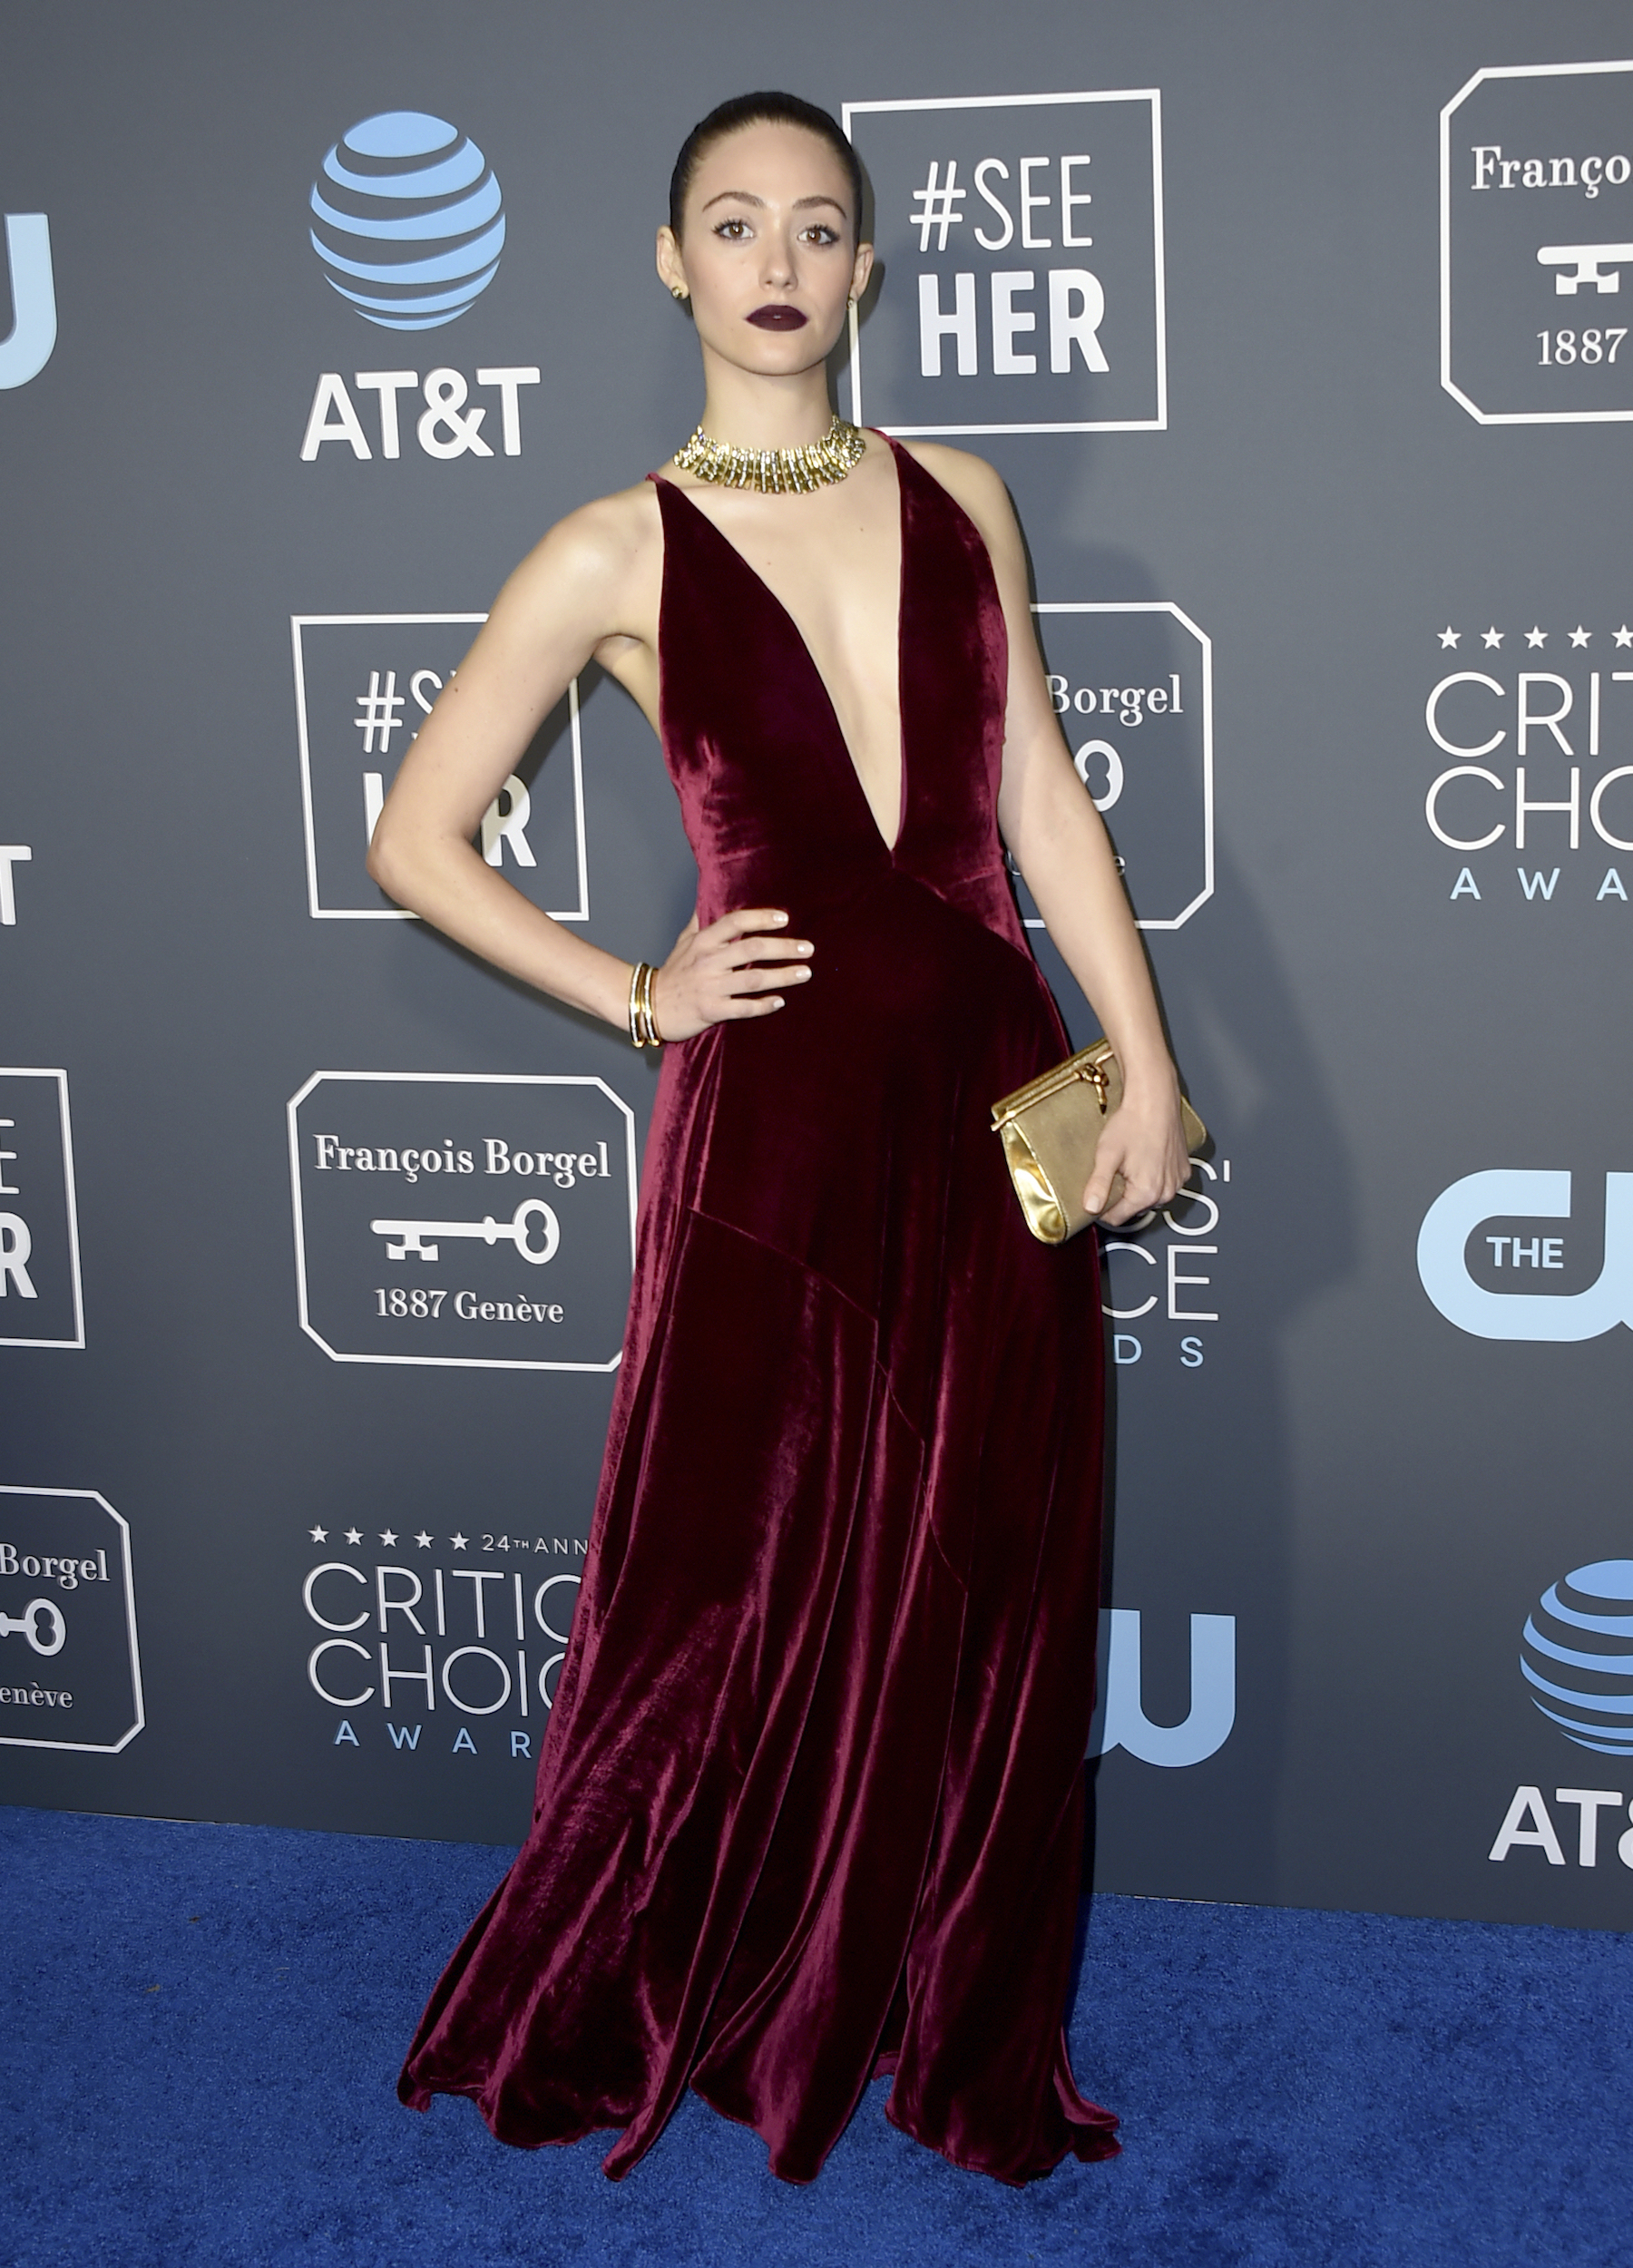 <div class='meta'><div class='origin-logo' data-origin='AP'></div><span class='caption-text' data-credit='Jordan Strauss/Invision/AP'>Emmy Rossum arrives at the 24th annual Critics' Choice Awards on Sunday, Jan. 13, 2019, at the Barker Hangar in Santa Monica, Calif.</span></div>